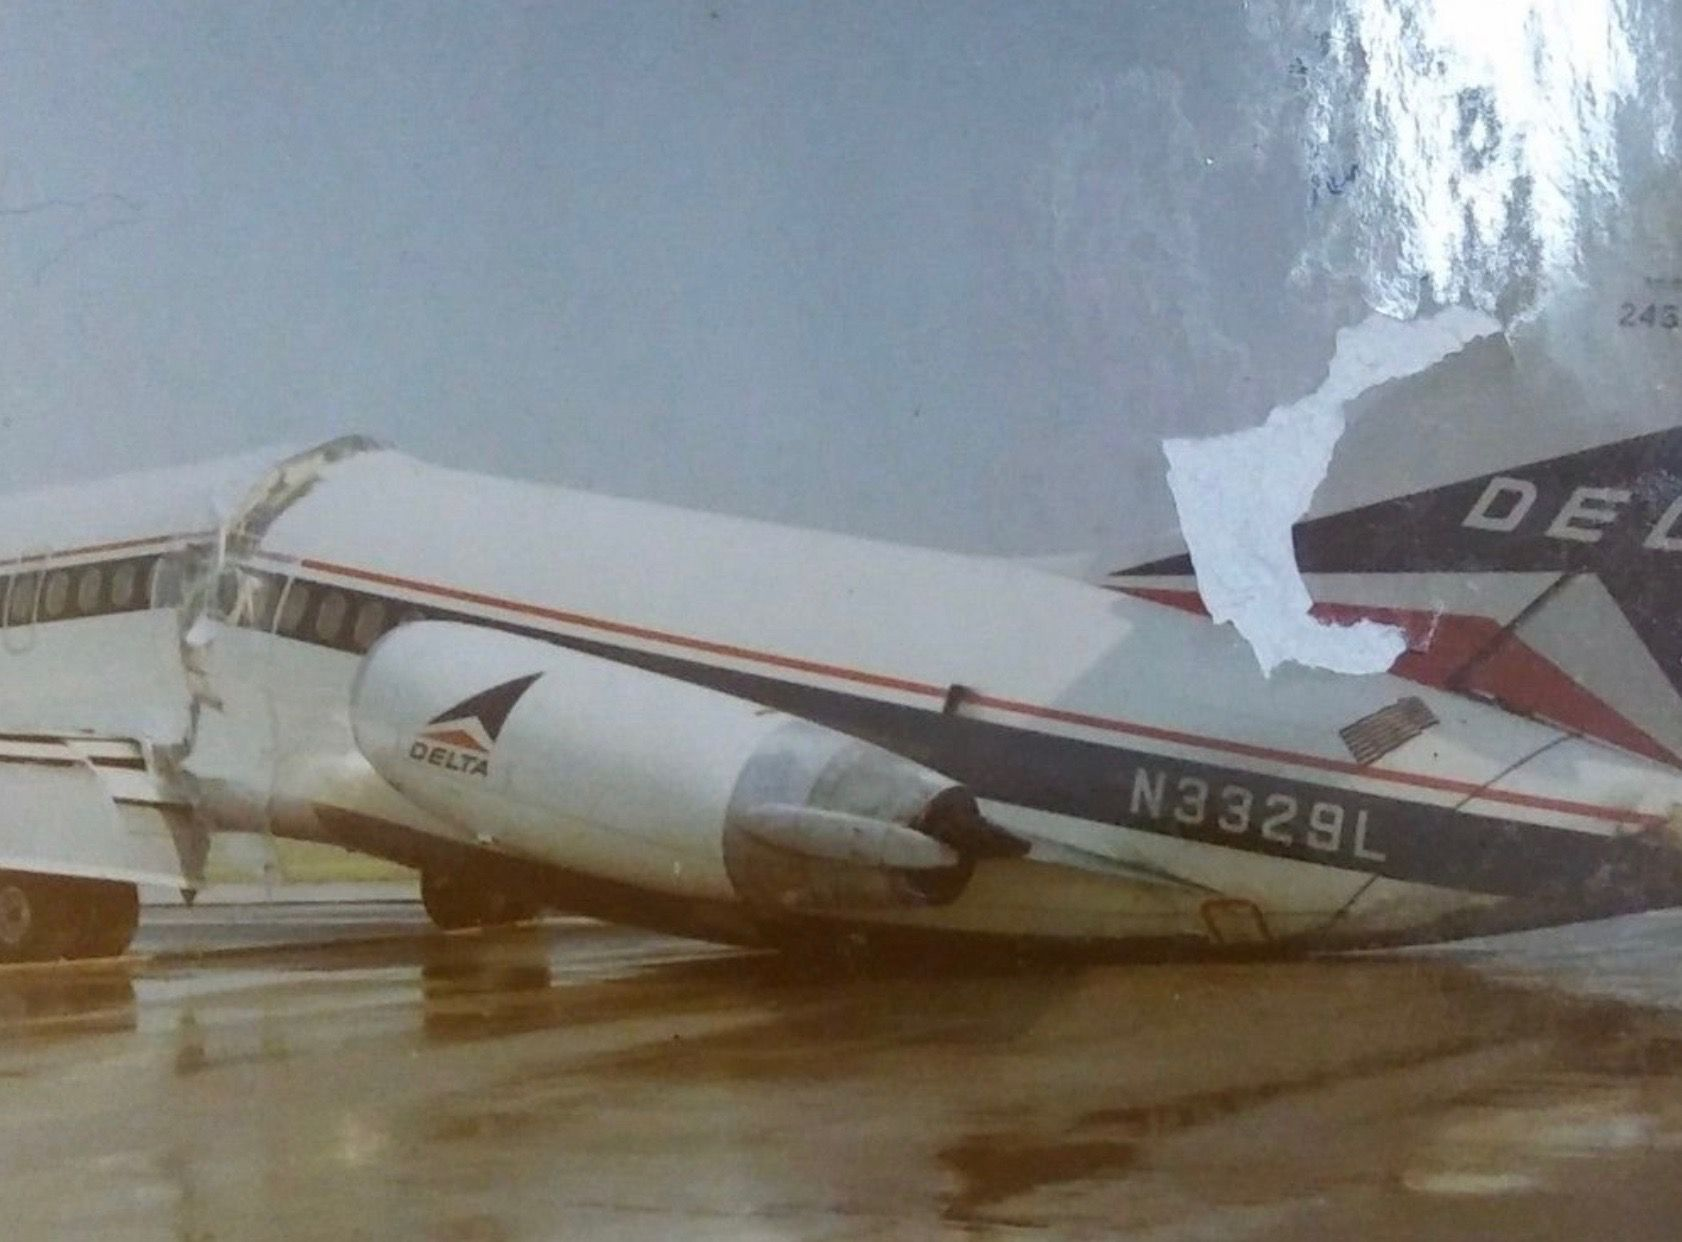 Pin By Carla Foster On Delta Aviation Accidents Vintage Aircraft Delta Airlines